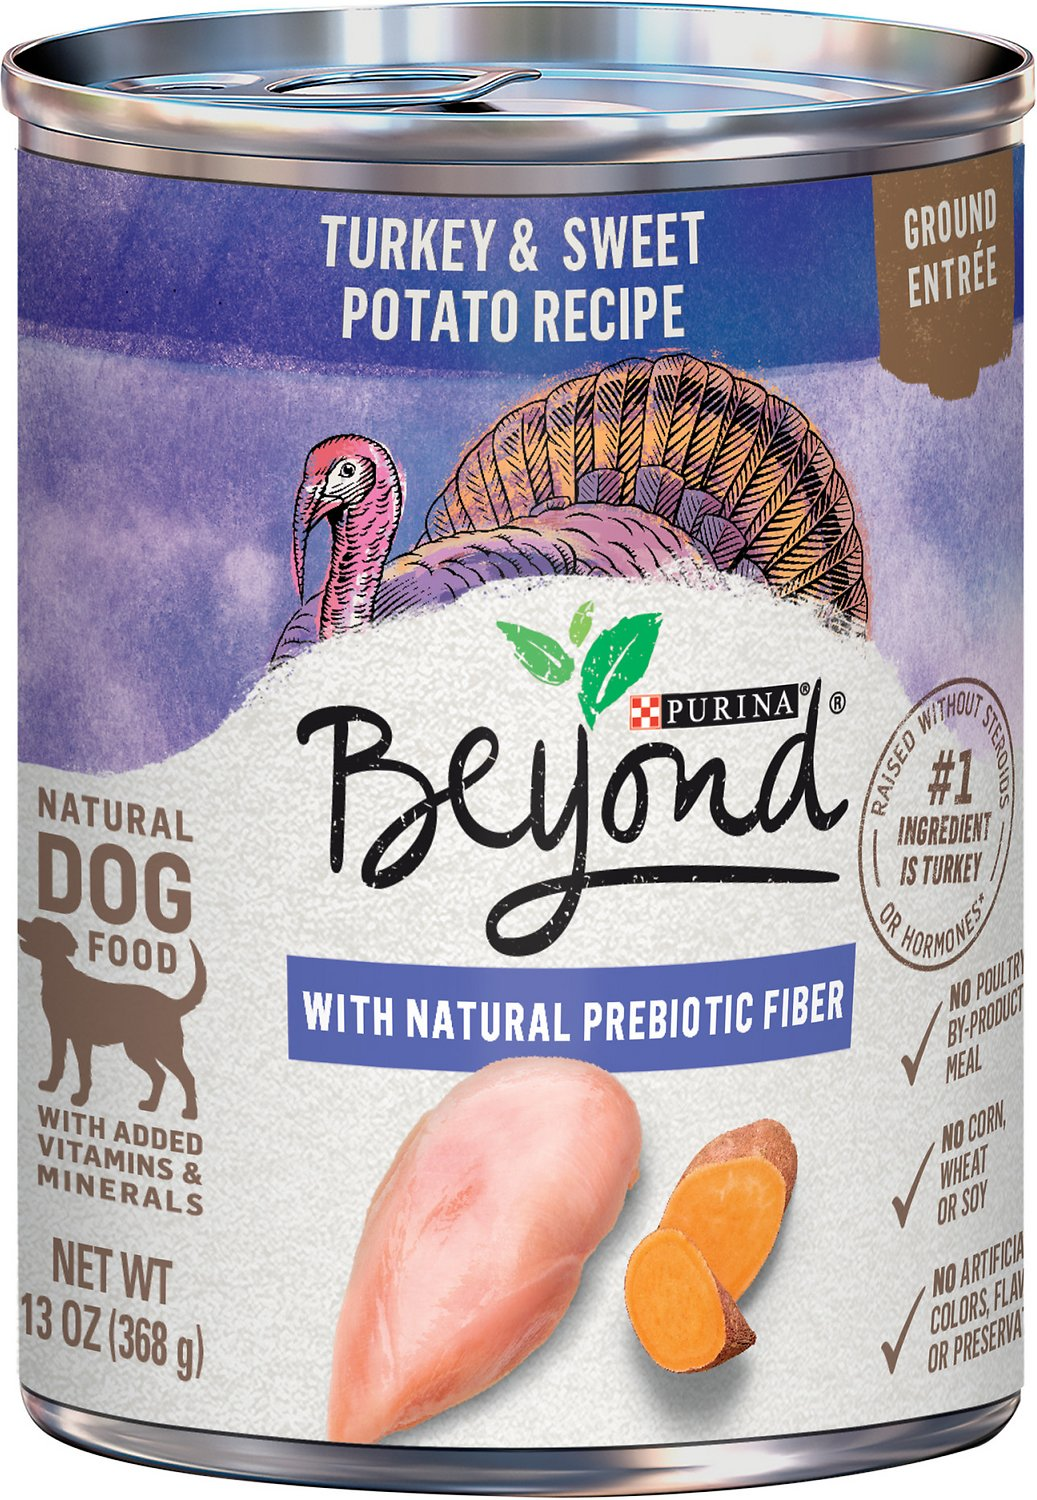 beyond canned dog food